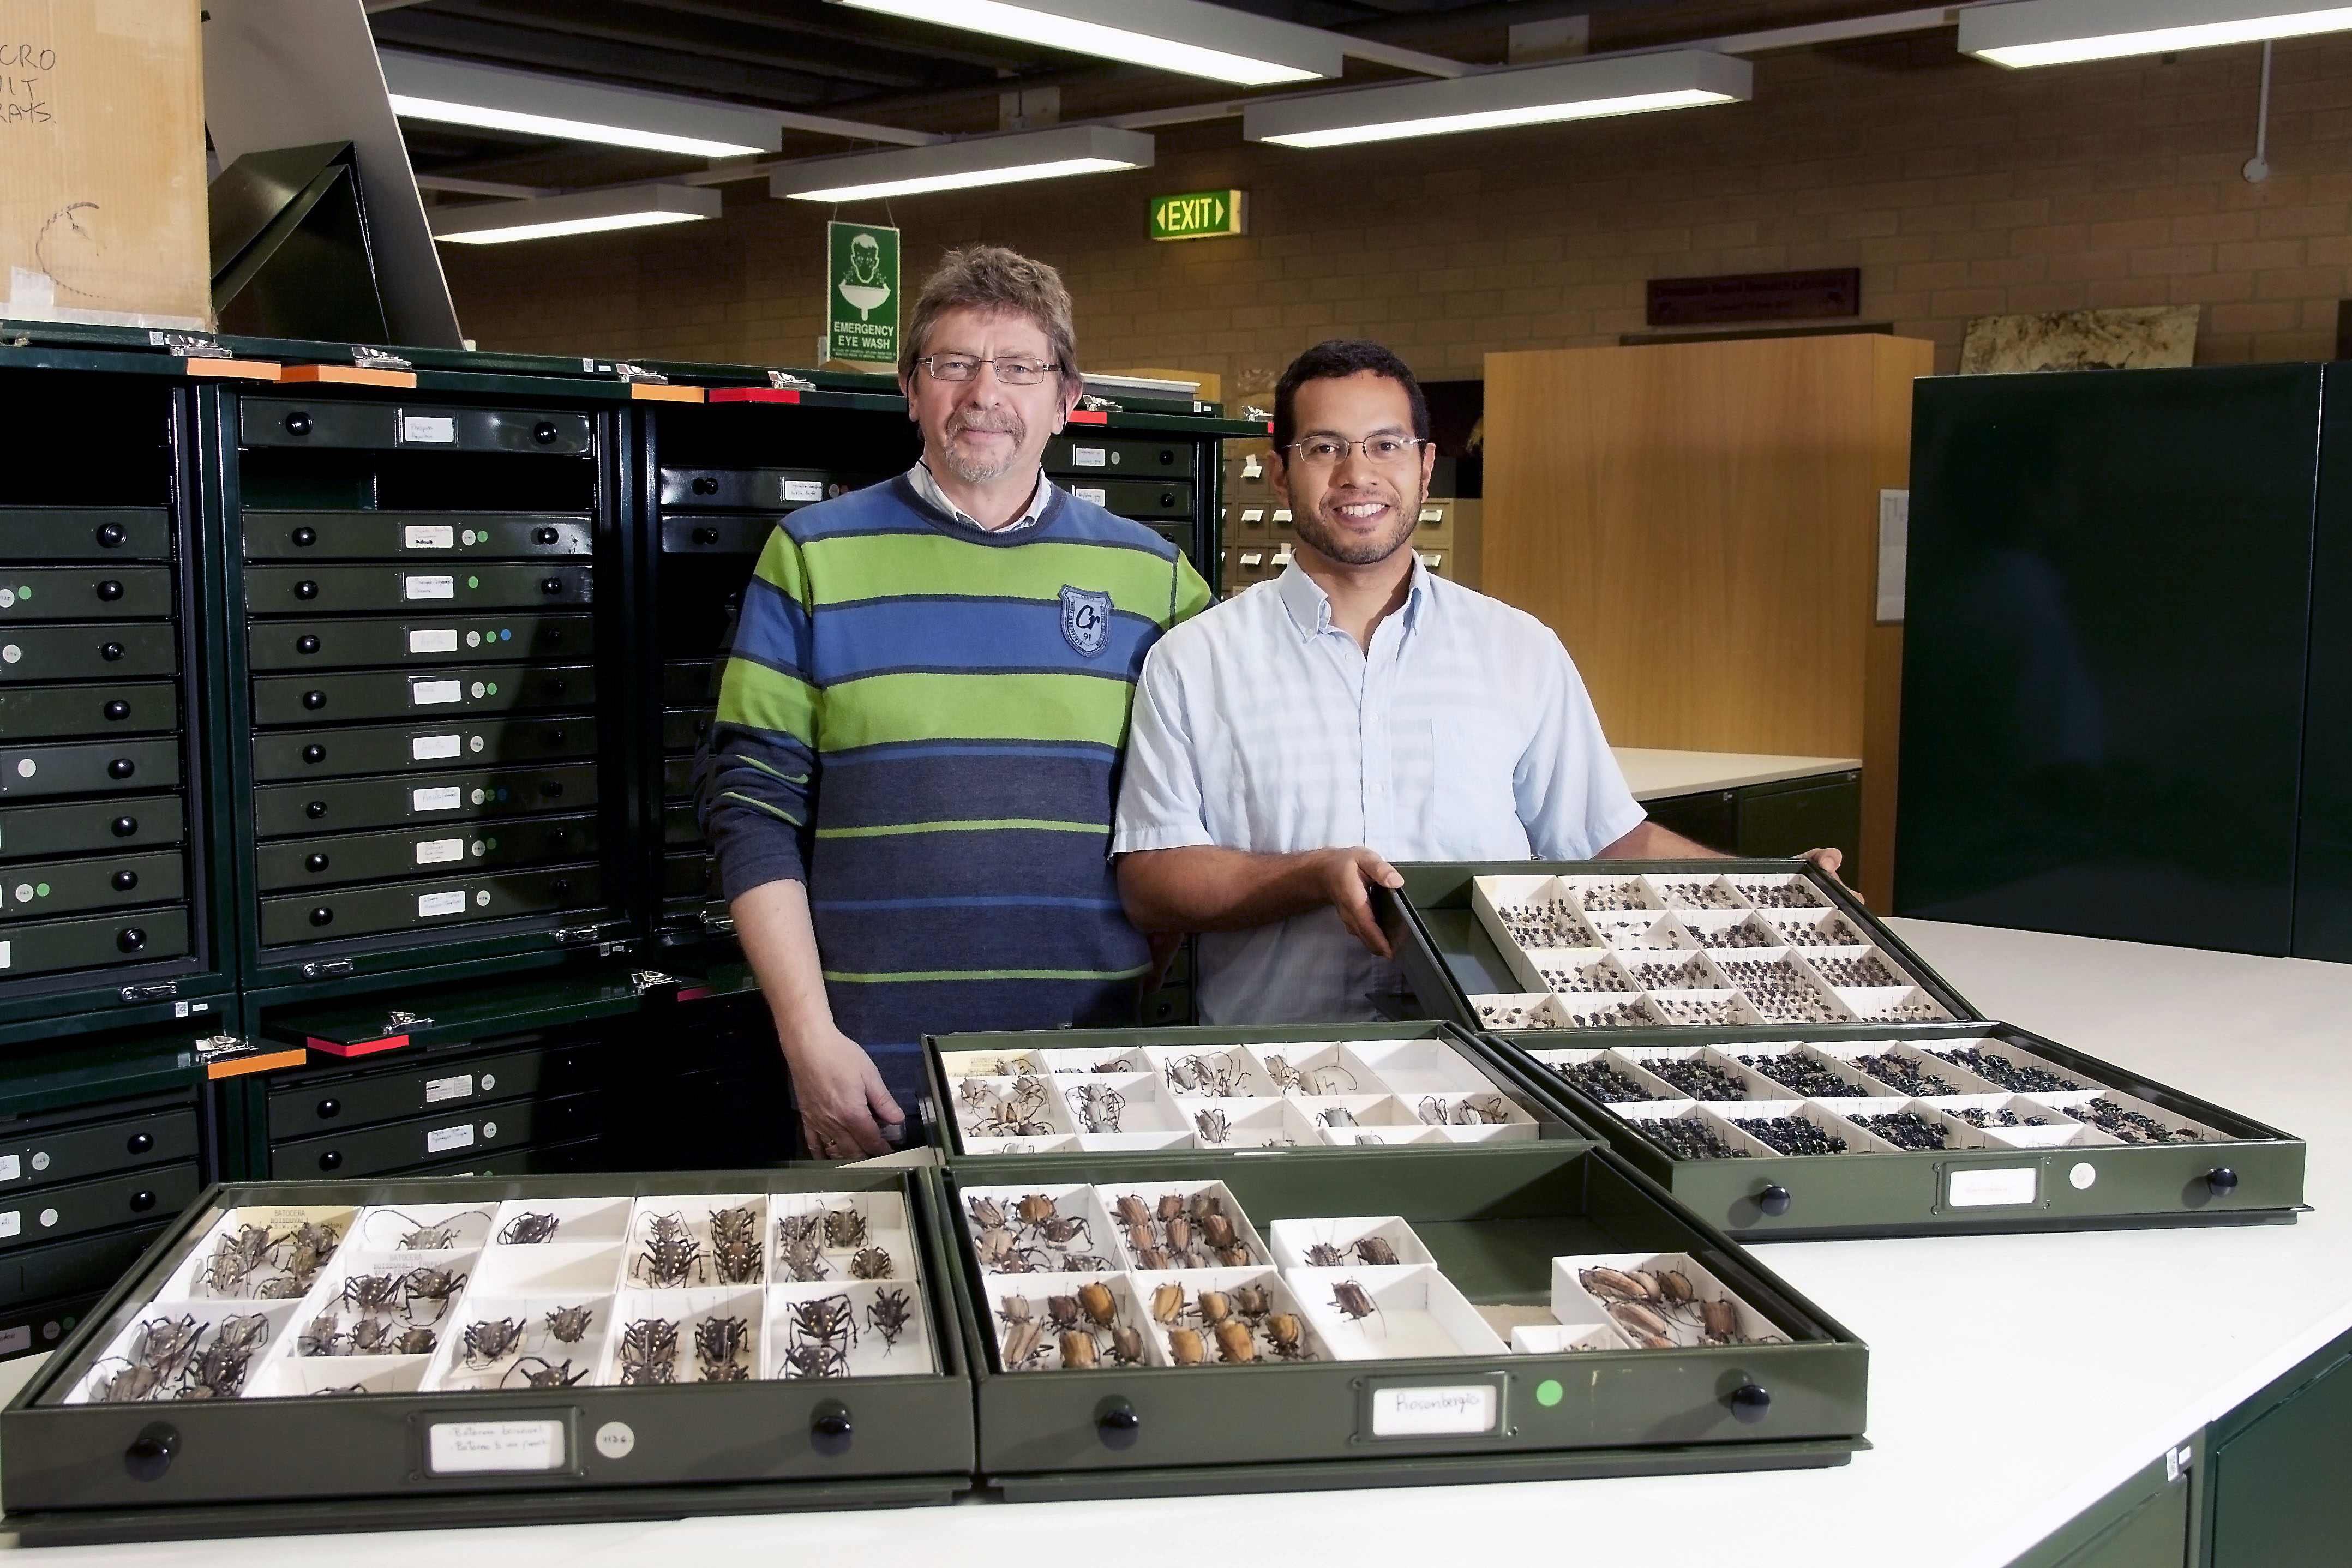 Two men with trays of insects